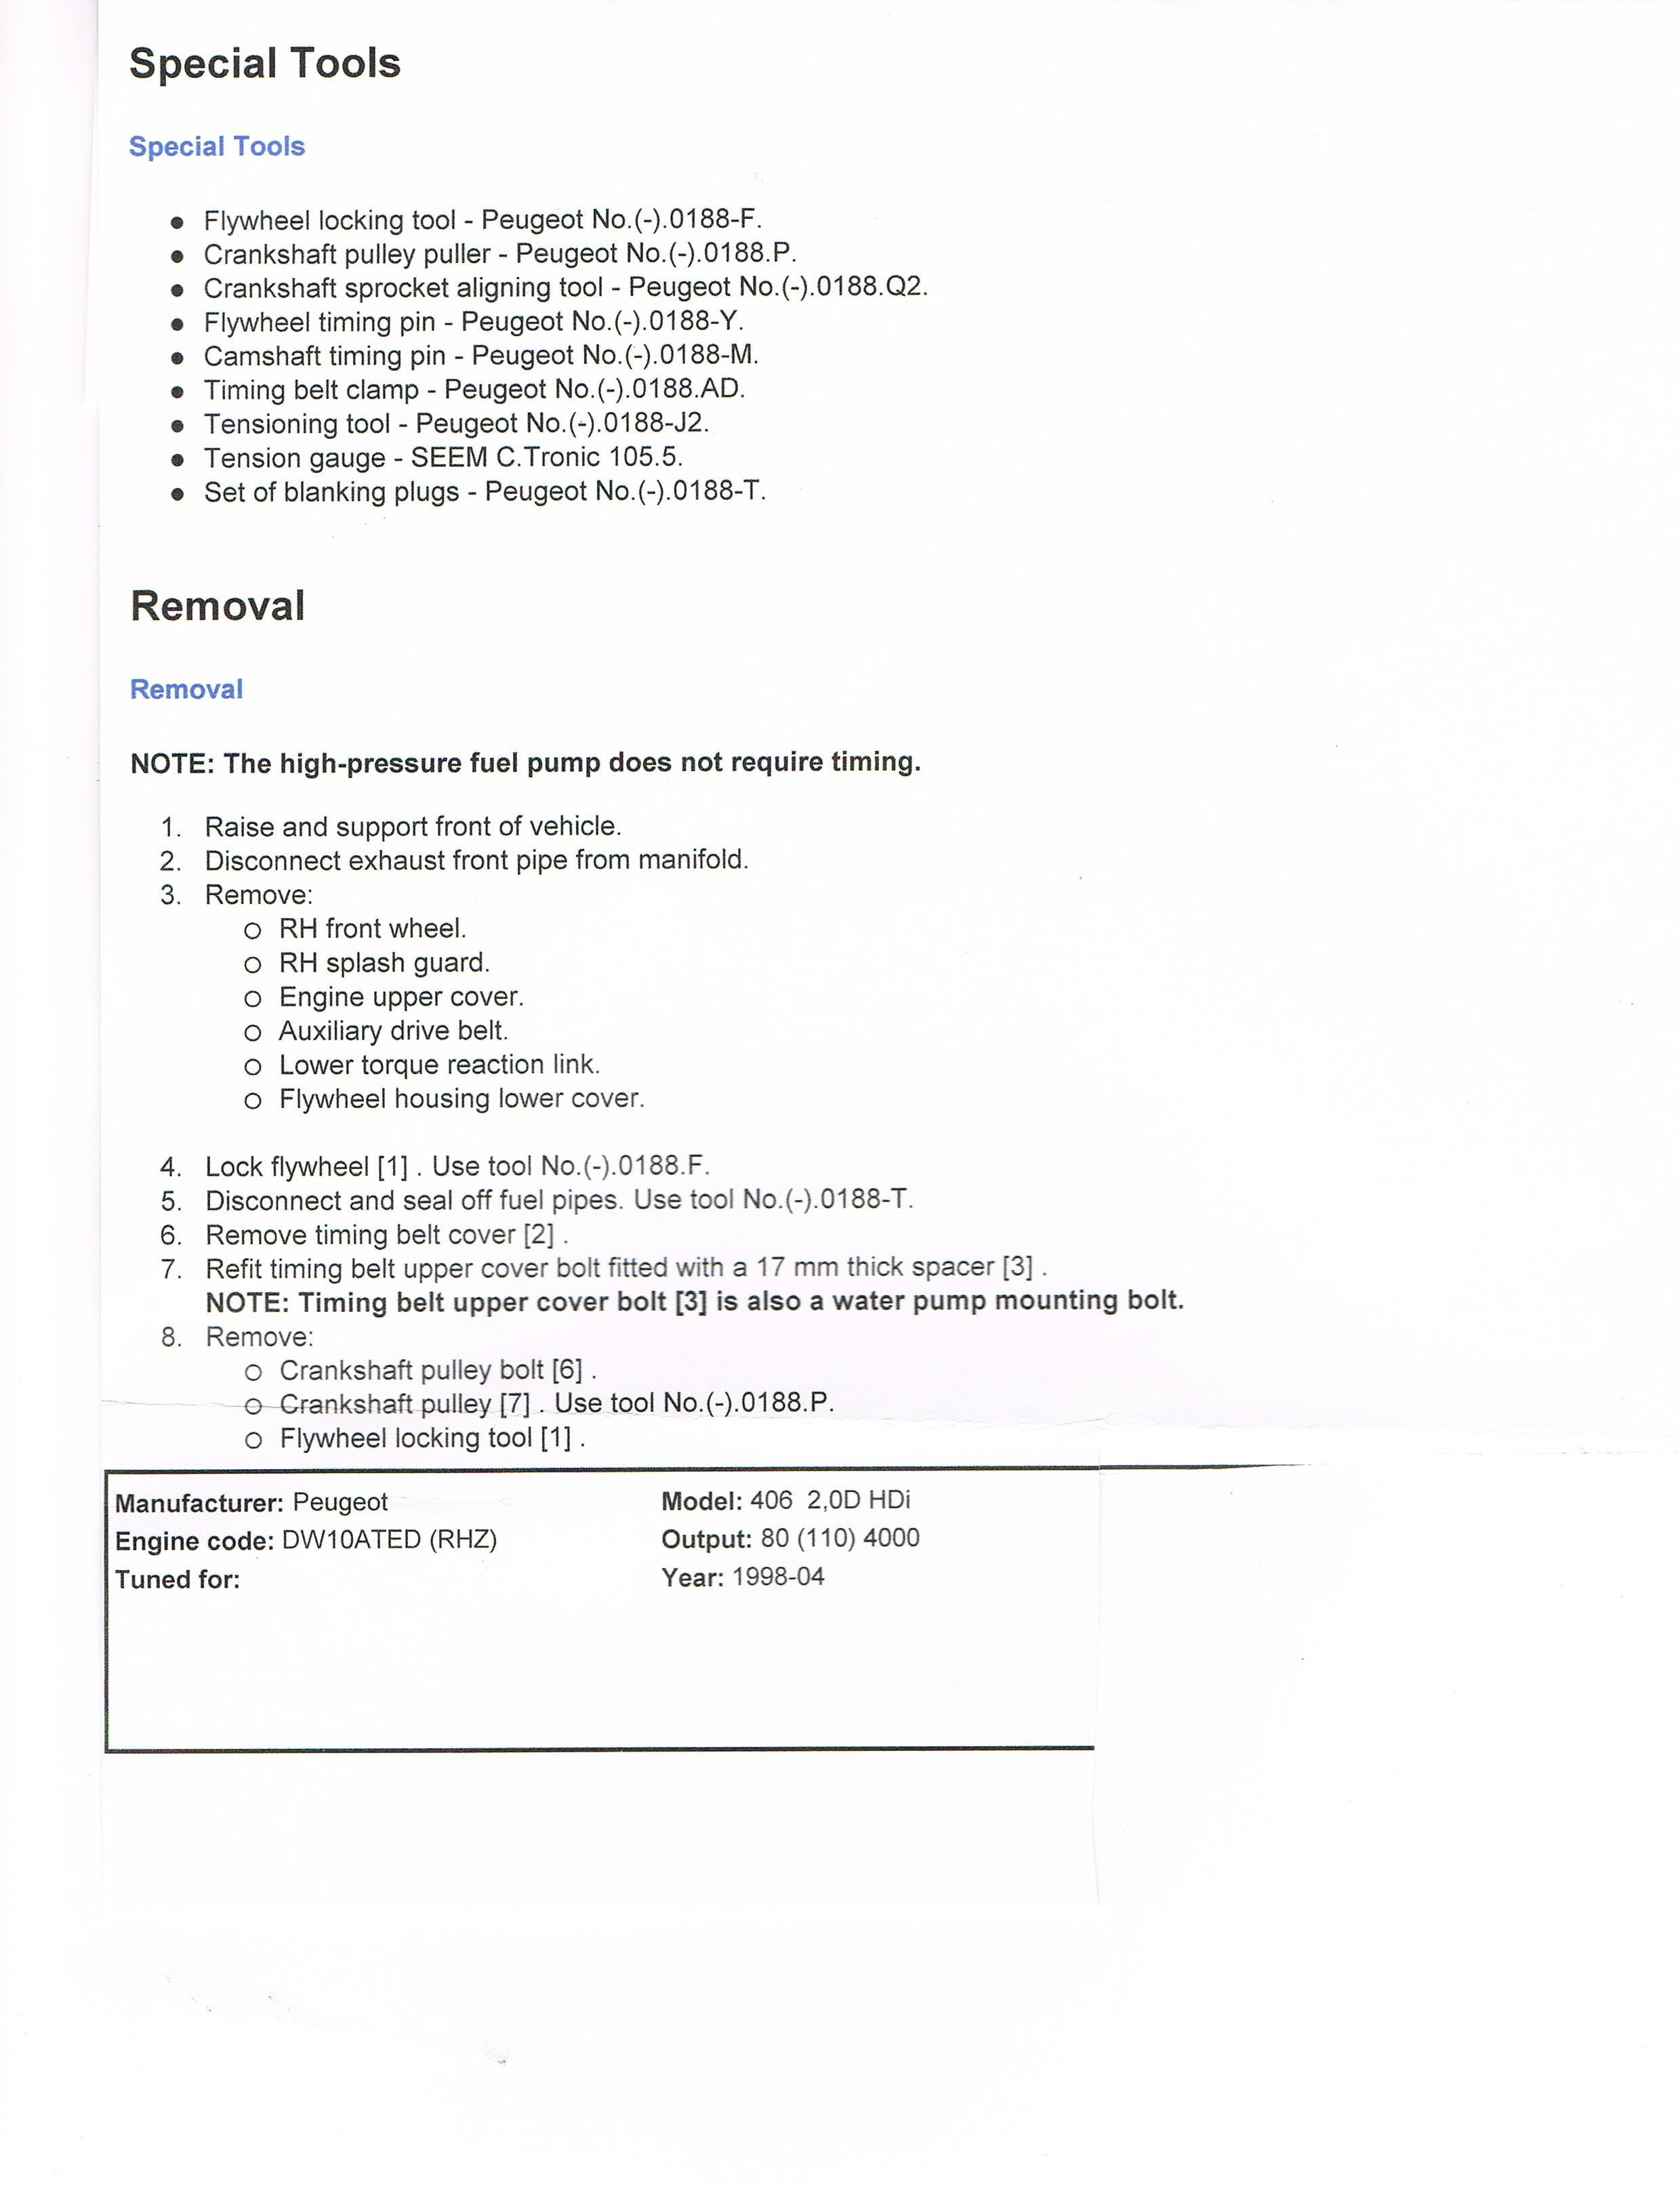 Formal Business Letter Template - Template for formal Business Letter New E E Meeting Templates for